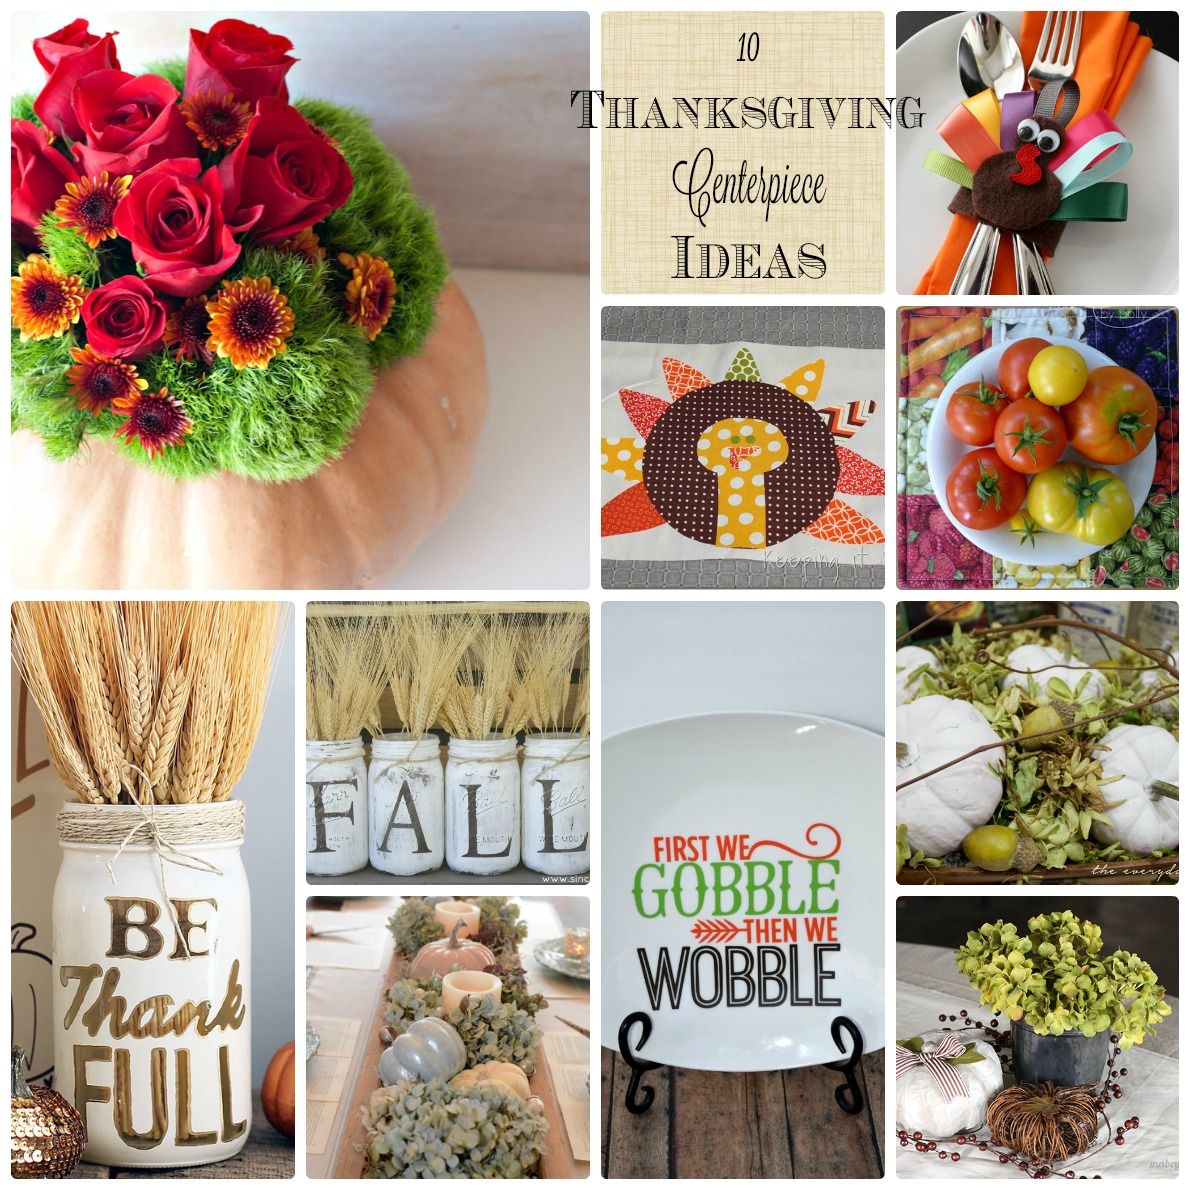 Thanksgiving centerpiece ideas mmm block party